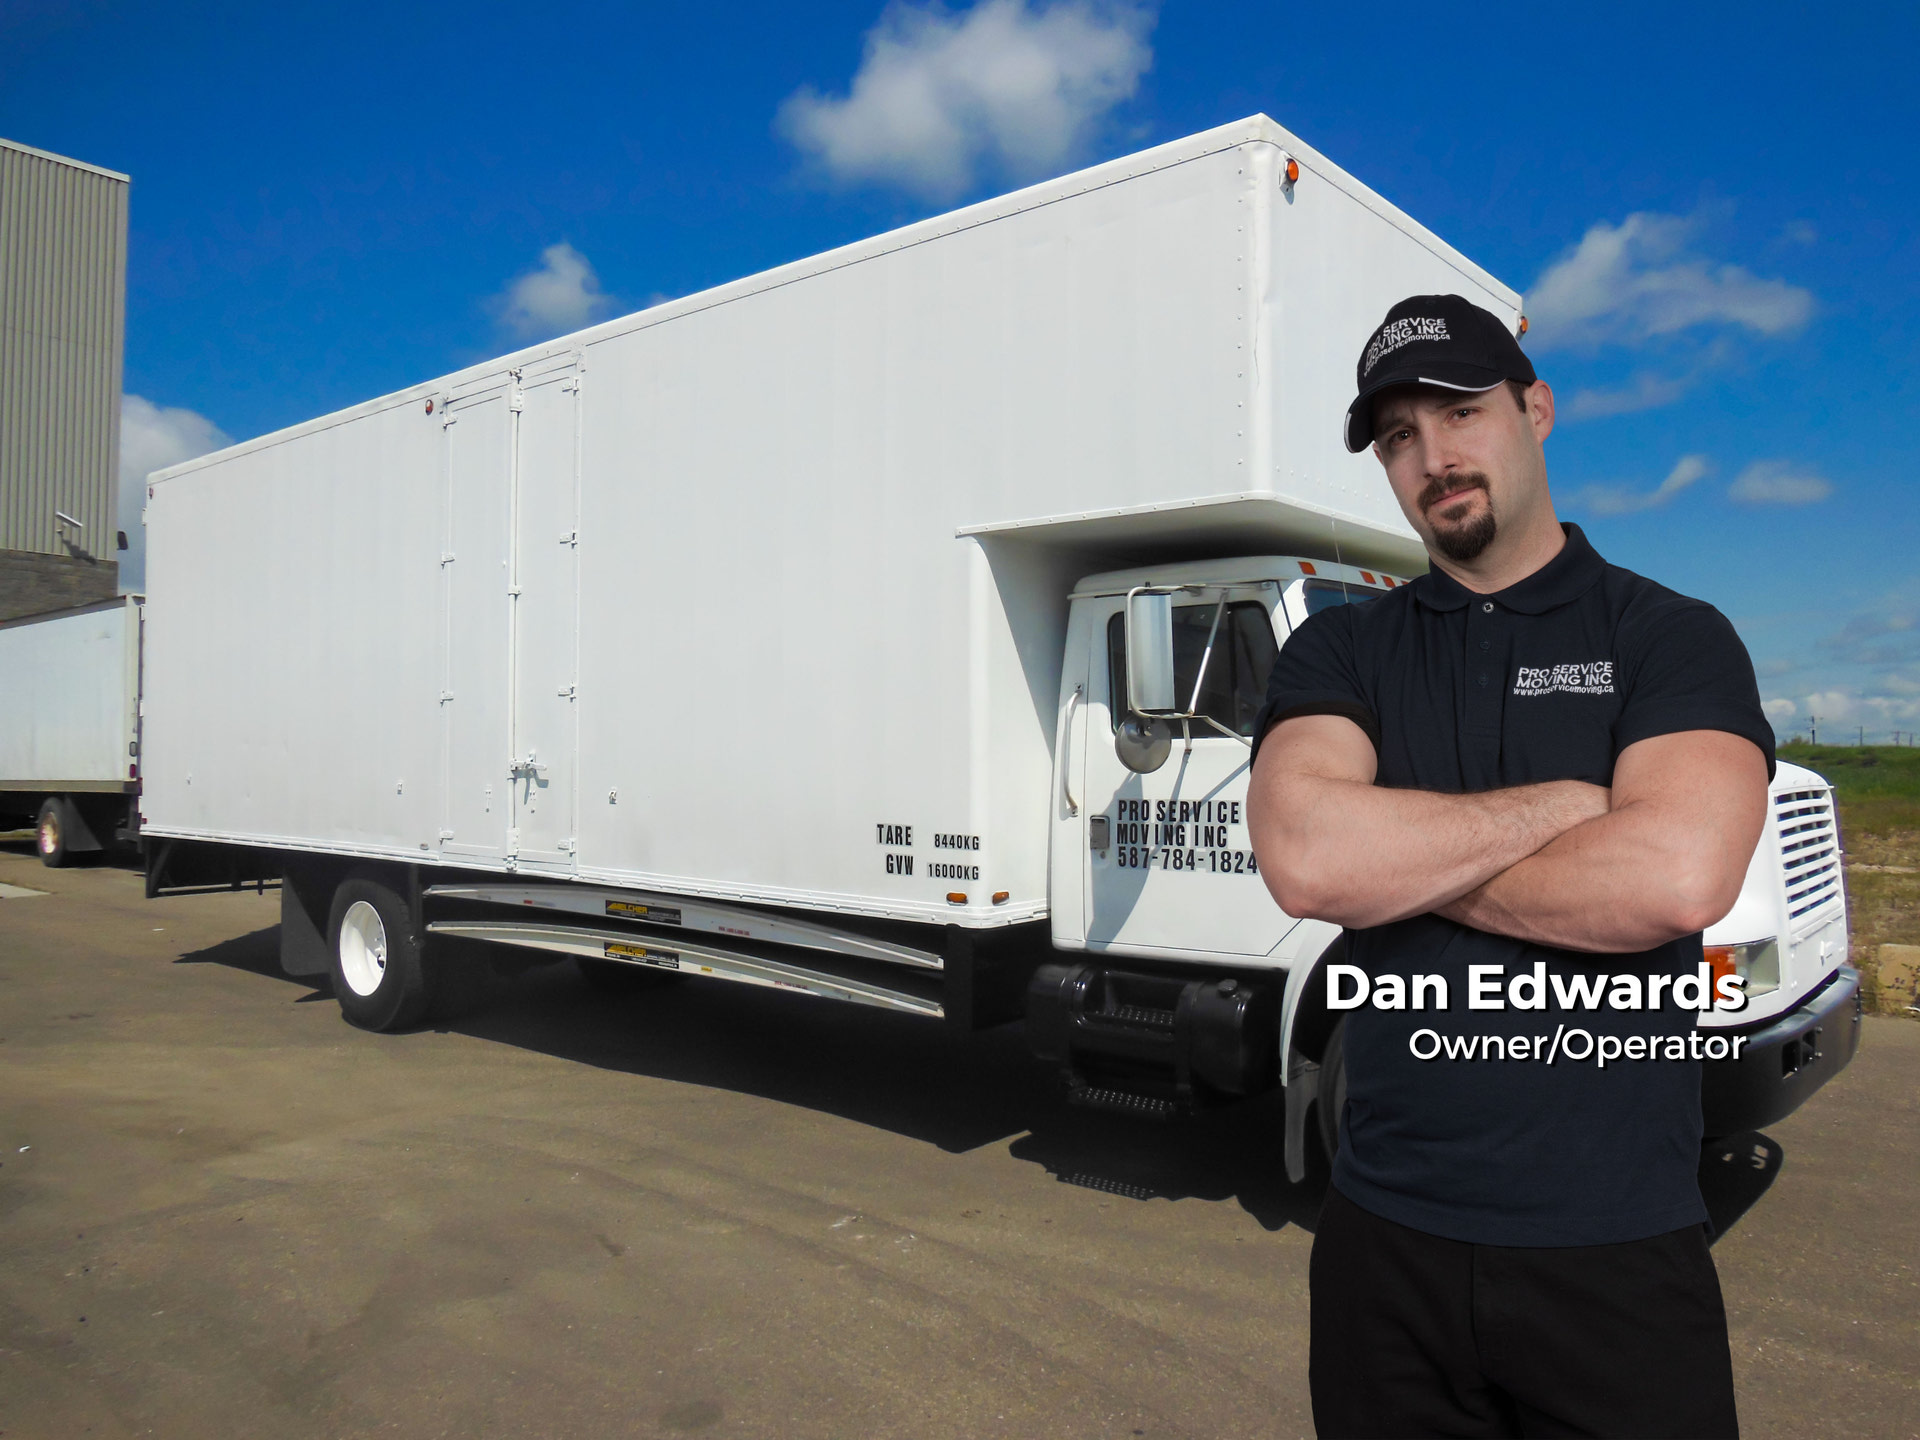 Professional Edmonton moving services